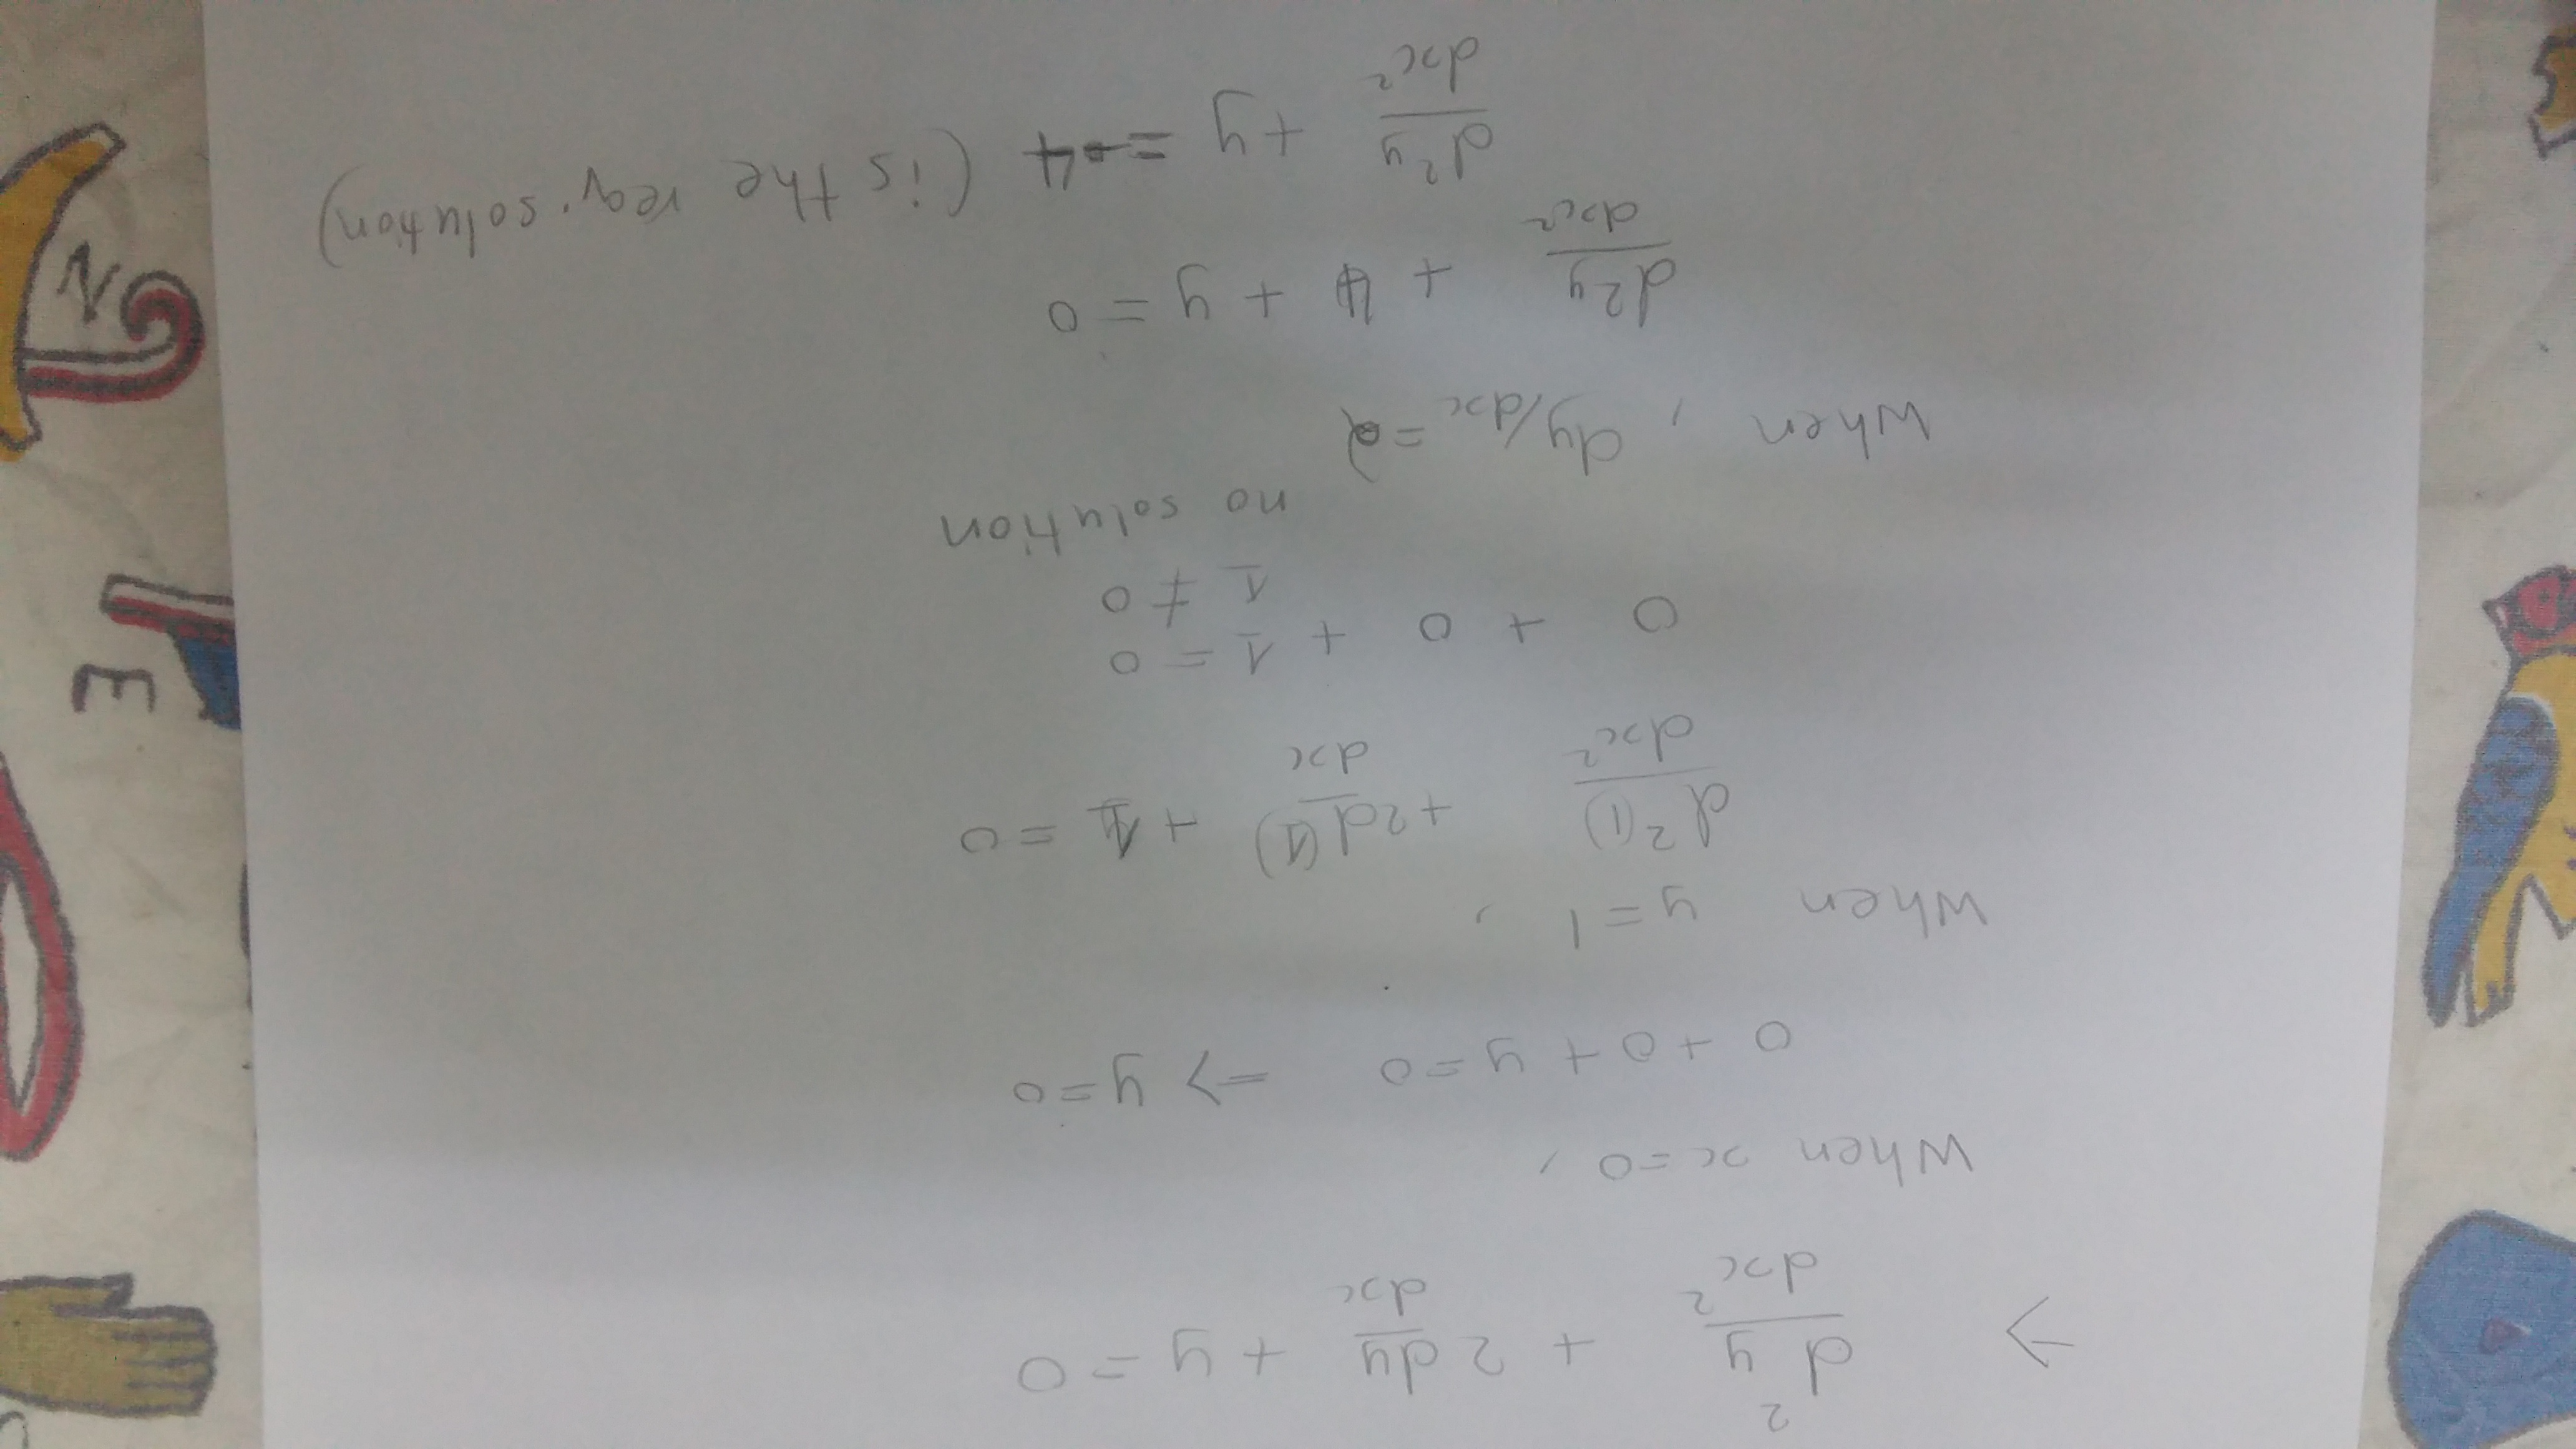 What Is The Solution Of Differential Equation D 2y Dx 2 2 Dy Dx Y 0 When X 0 Y 1 Dy Dx 2 Quora Play shooting games for free on y0.com! differential equation d 2y dx 2